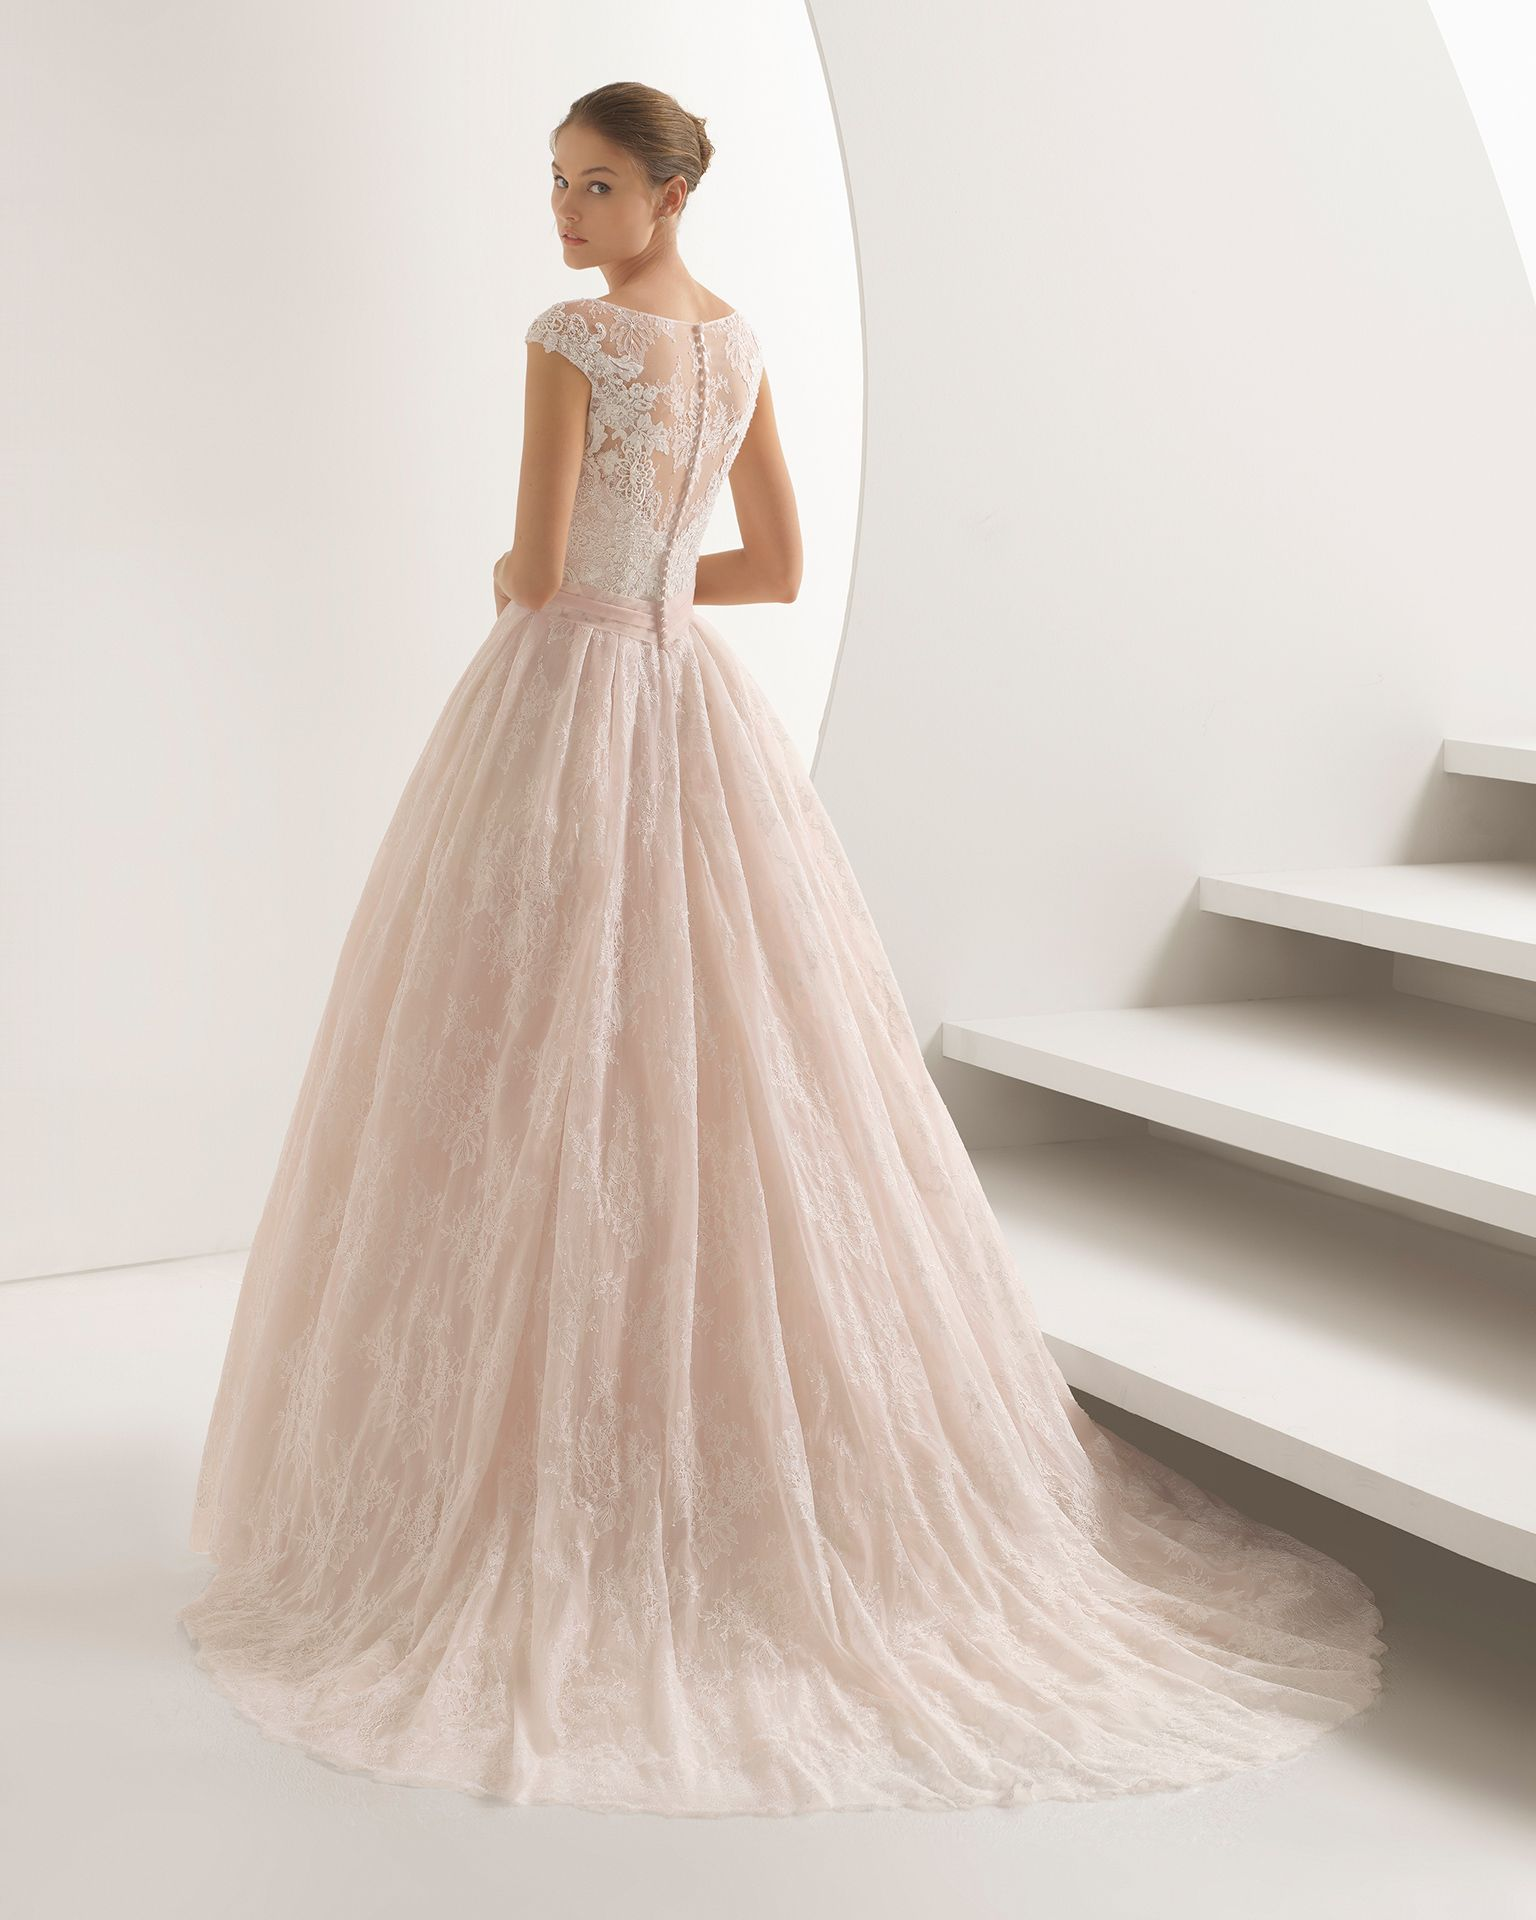 Amanda bridal collection rosa clará collection princess